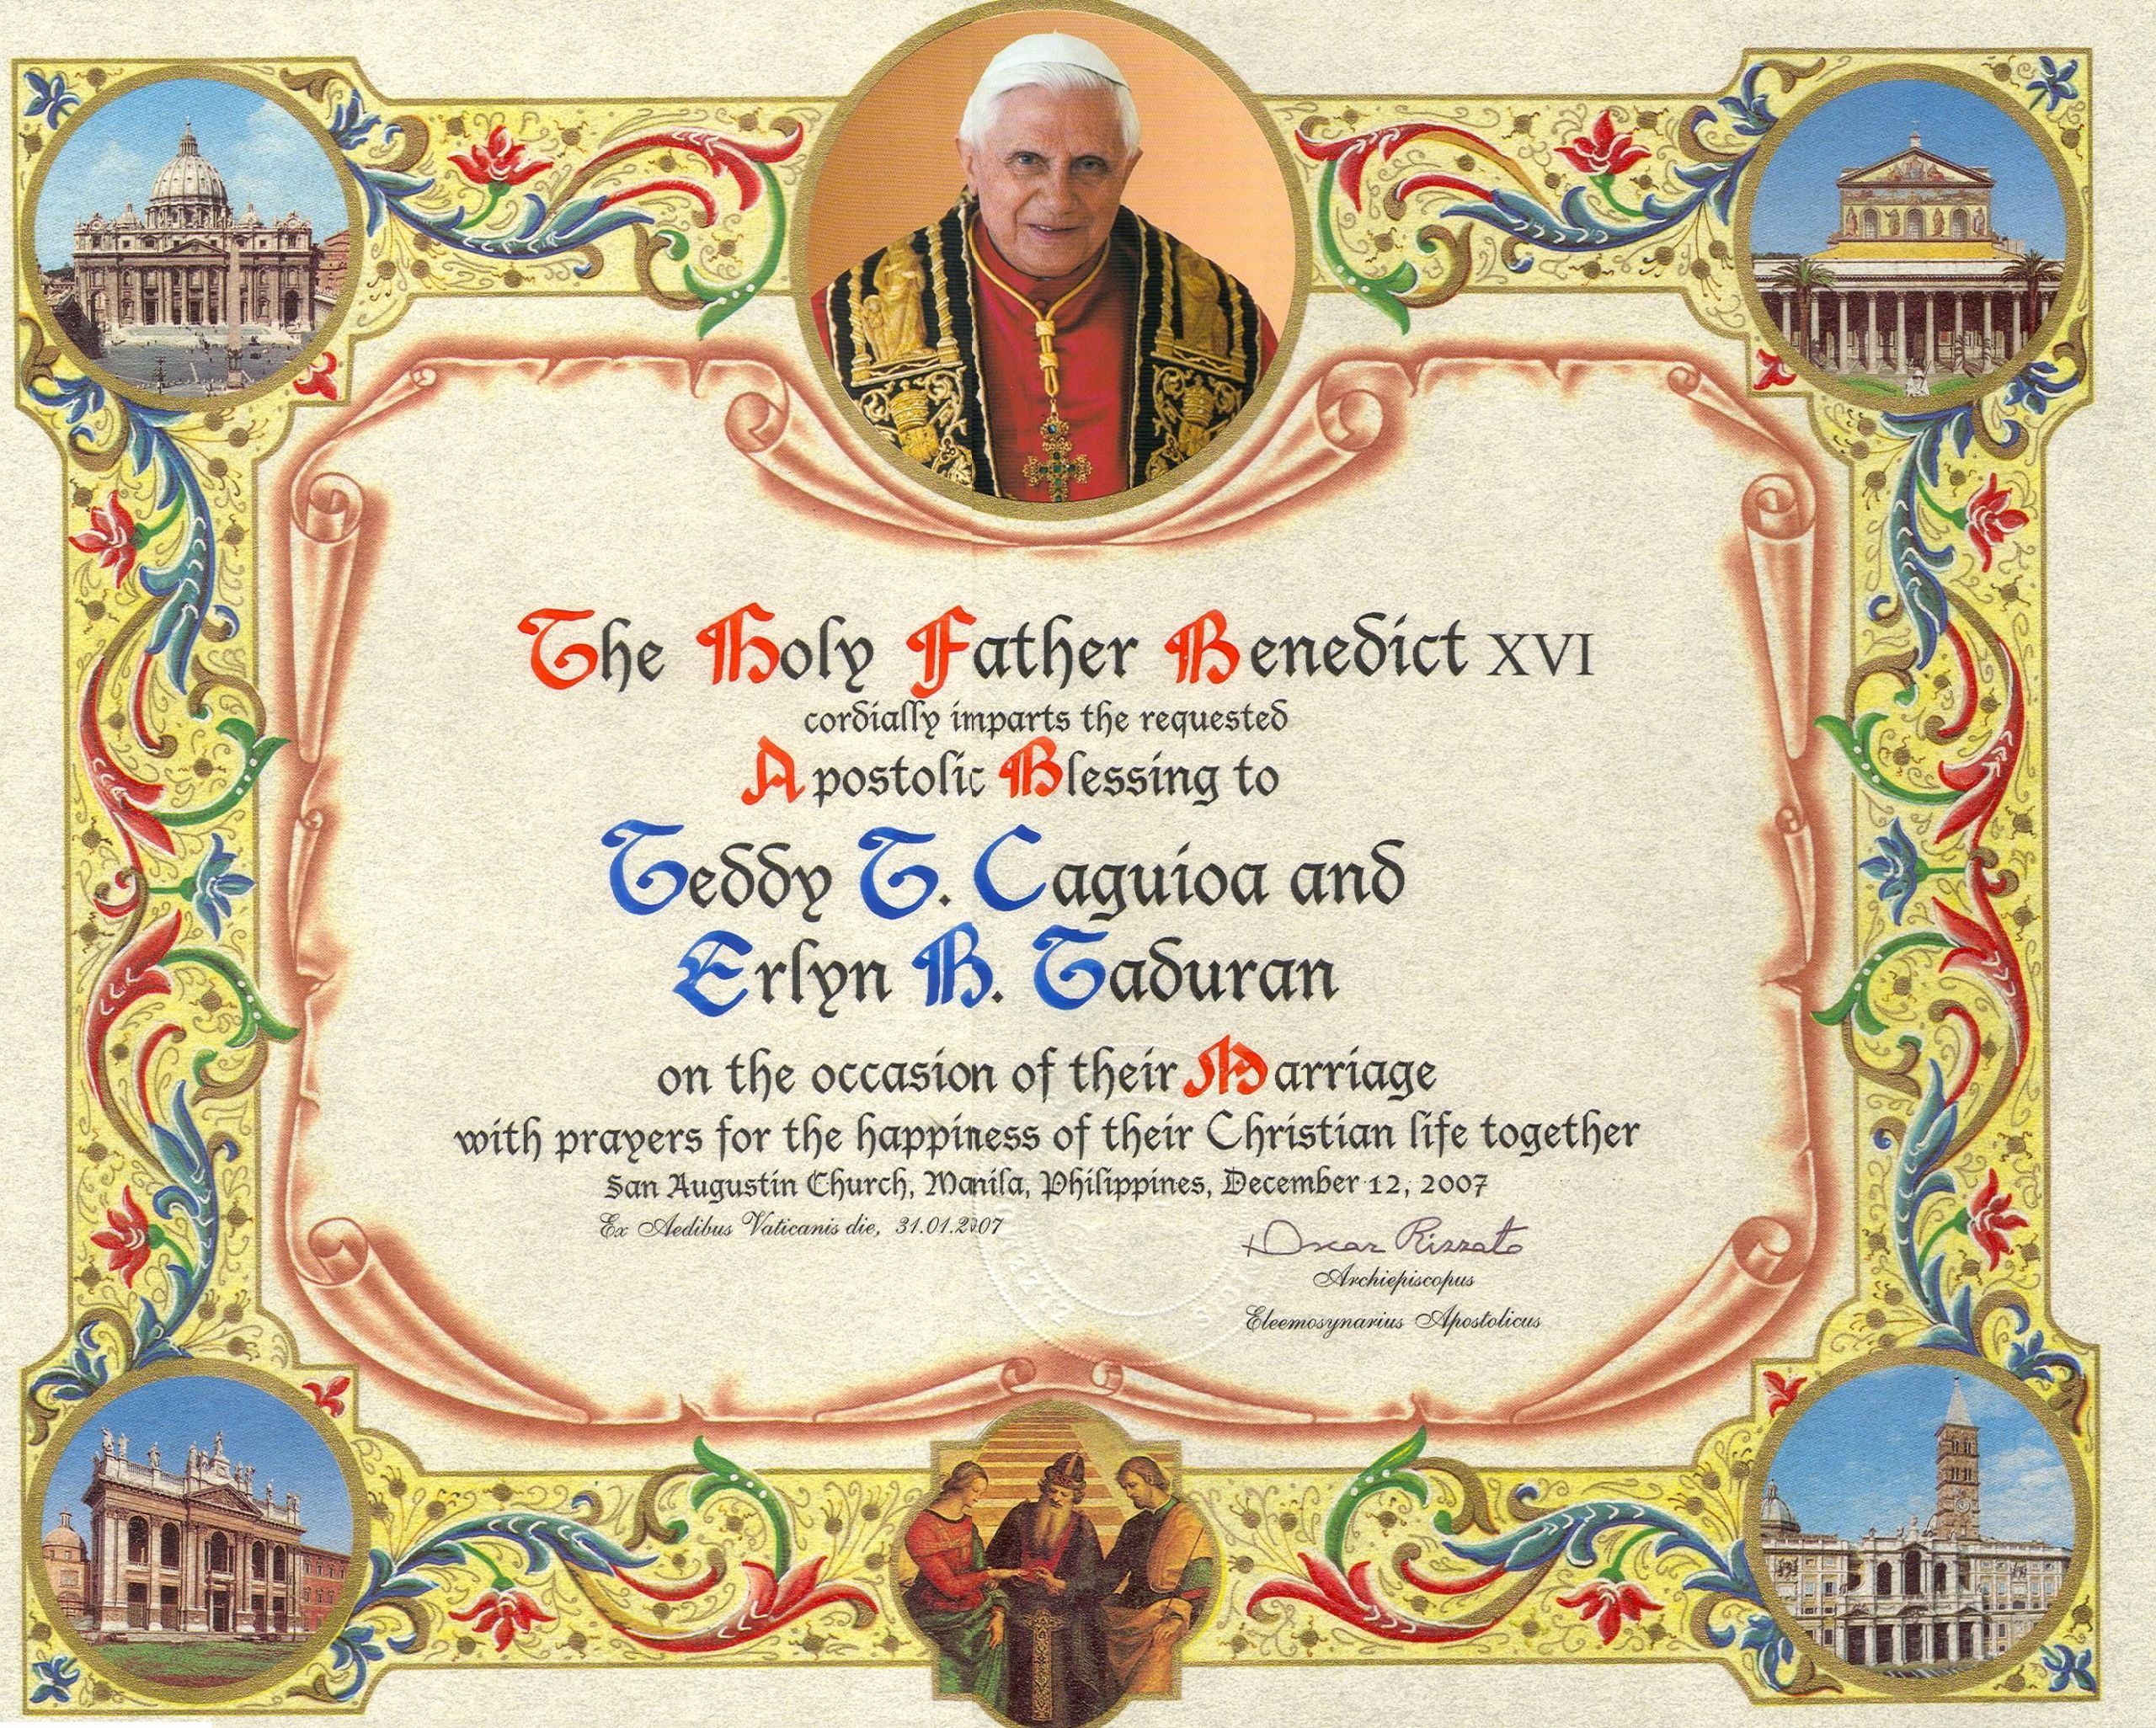 Catholic Marriage Certificate Template New Catholics Can A Papal Wedding Blessing From the Holy